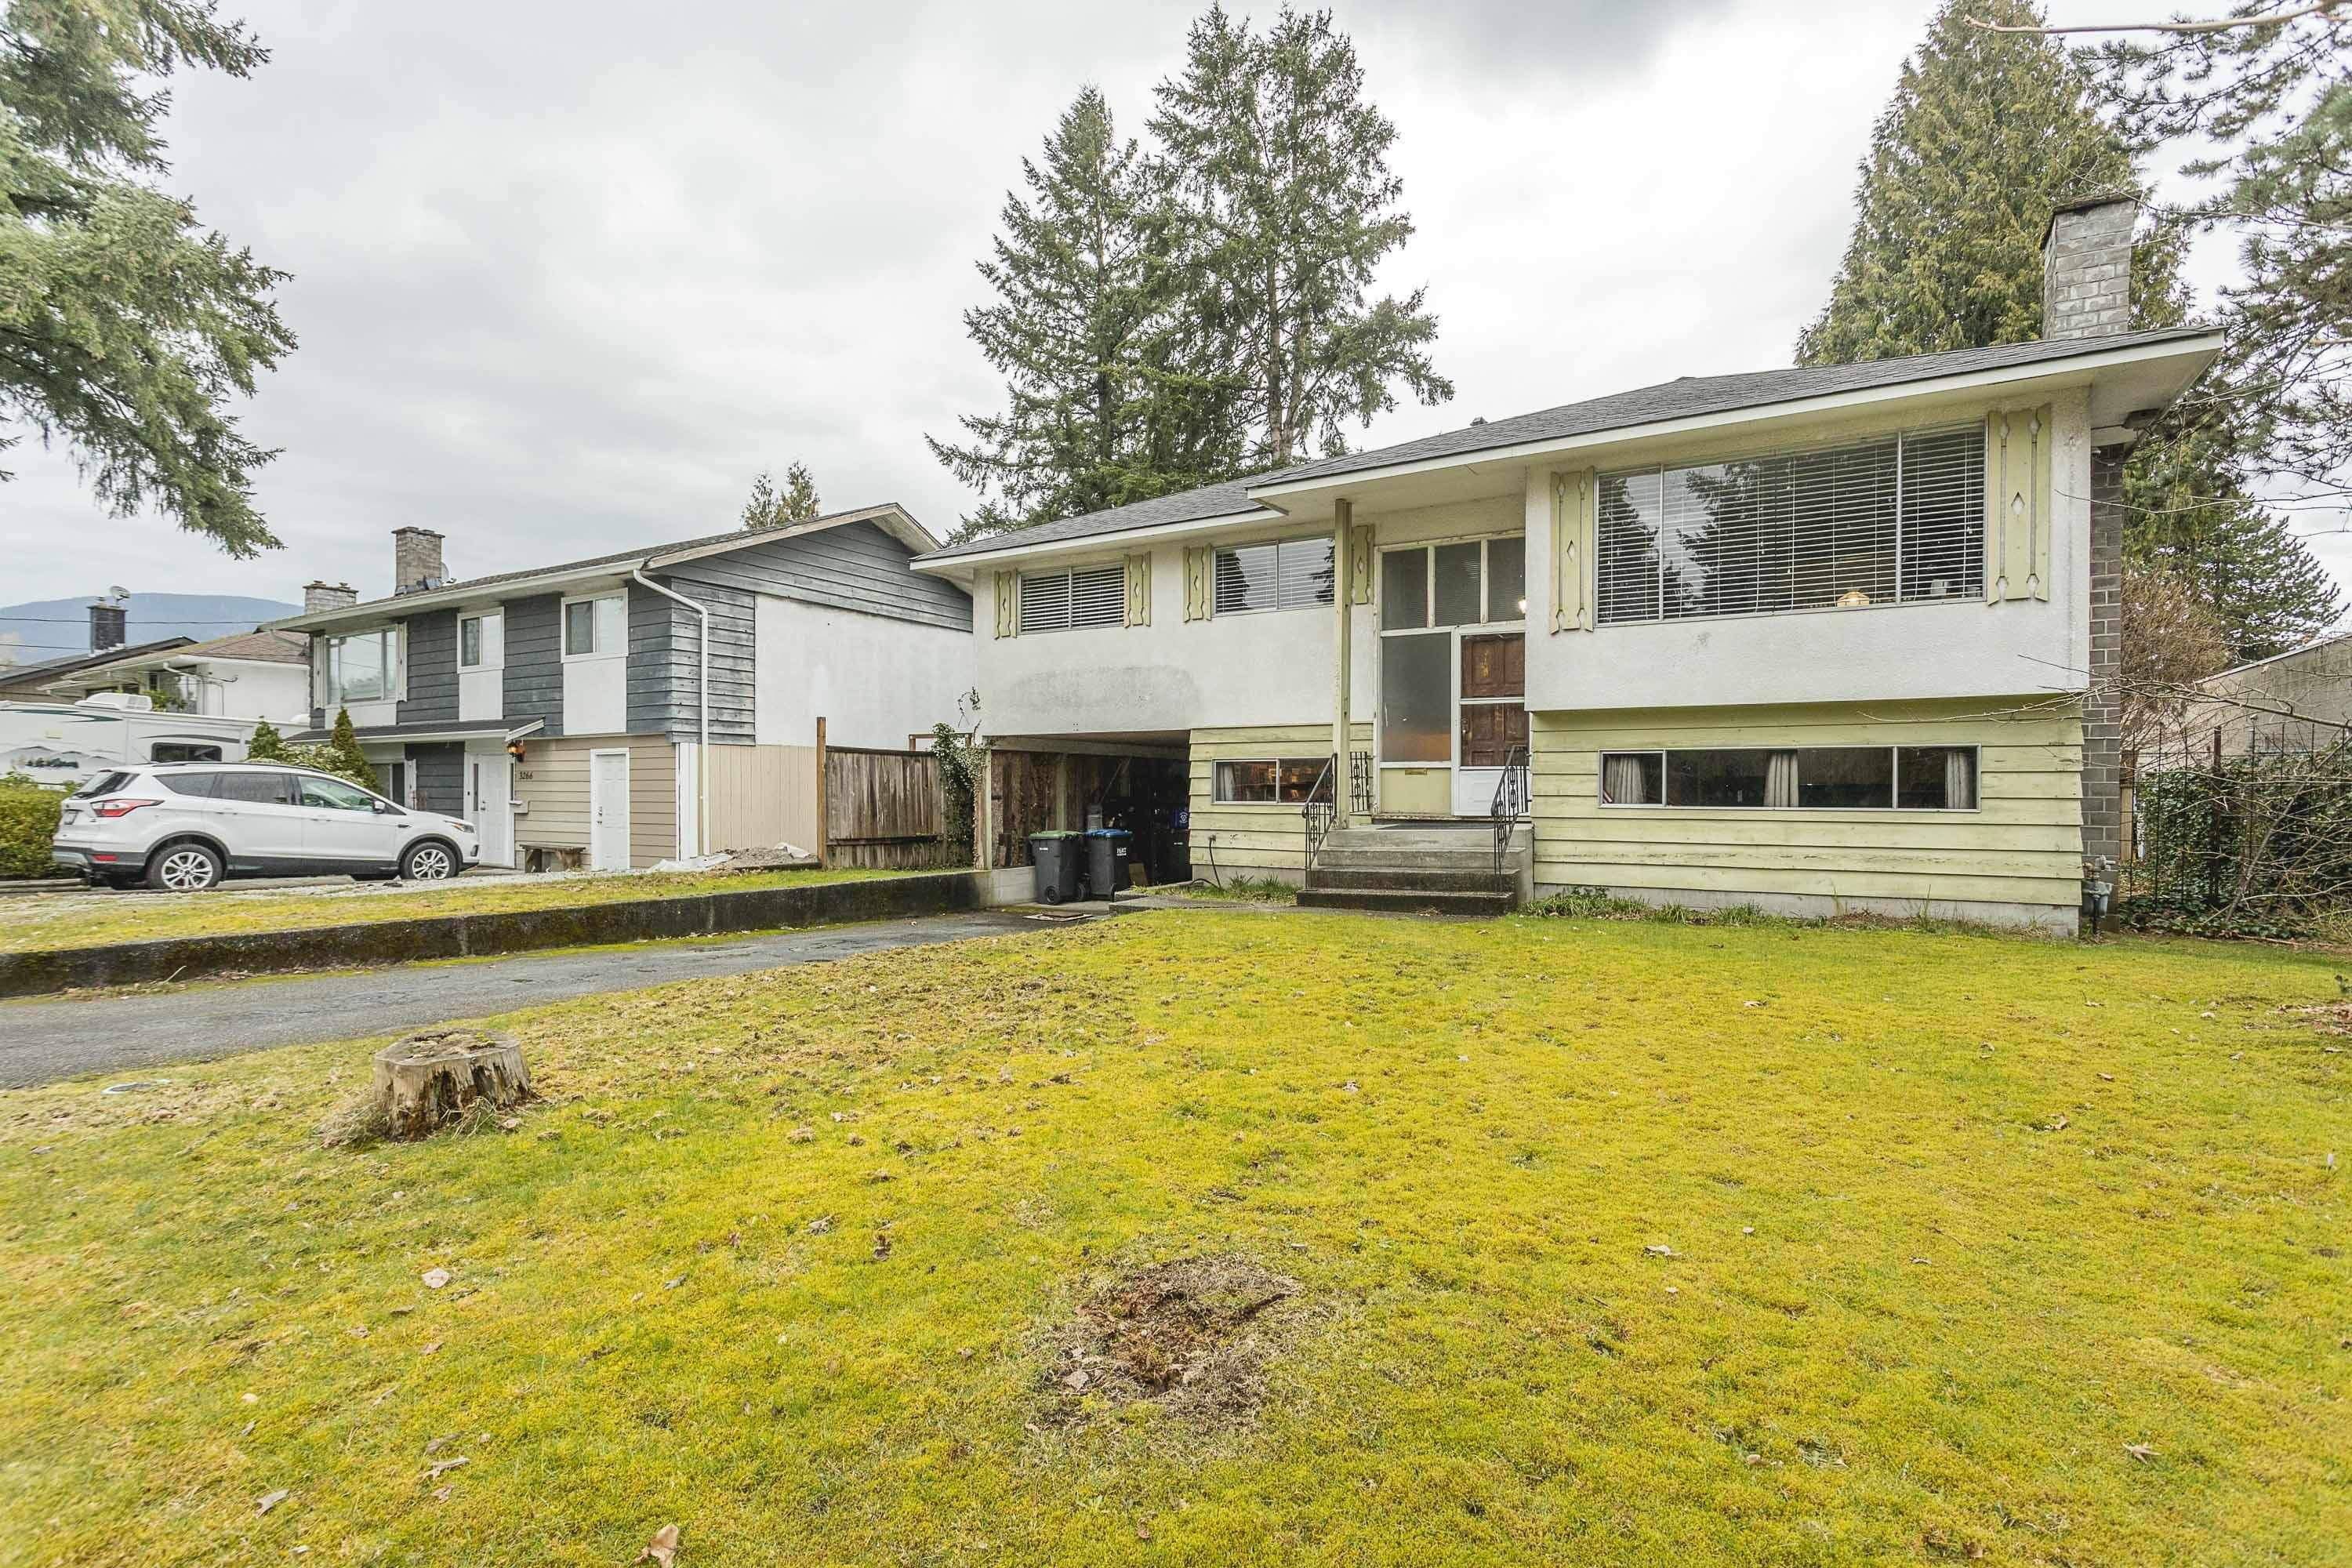 Photo 2: Photos: 3260 ULSTER Street in Port Coquitlam: Lincoln Park PQ House for sale : MLS®# R2613283